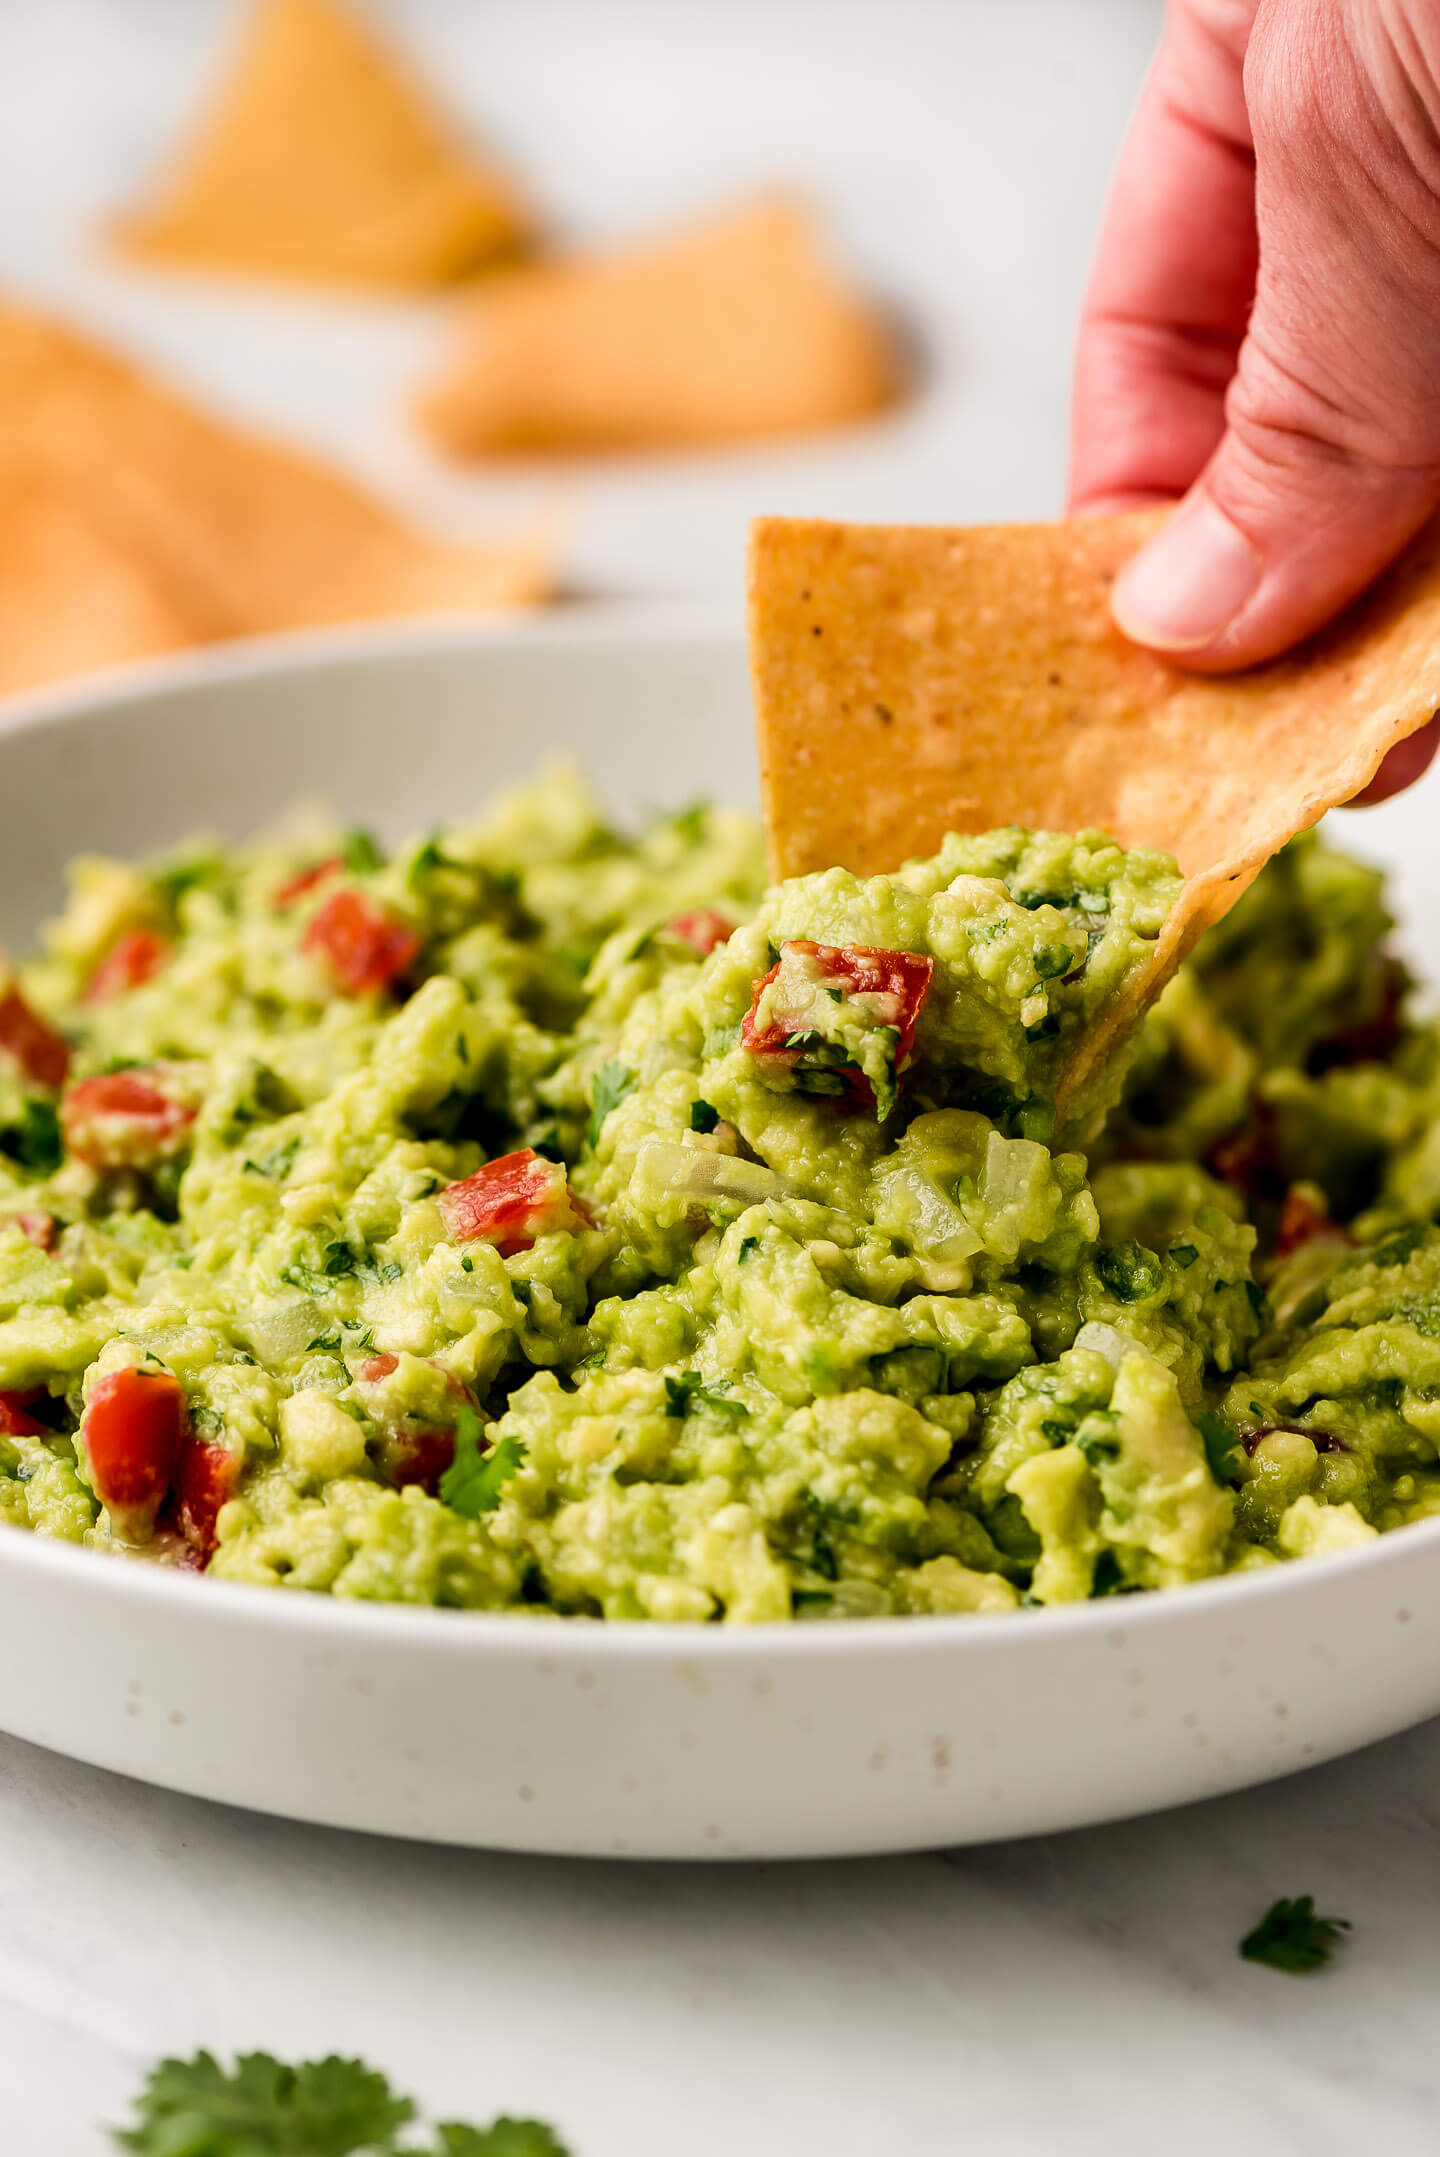 A hand scooping out guacamole with a tortilla chip.